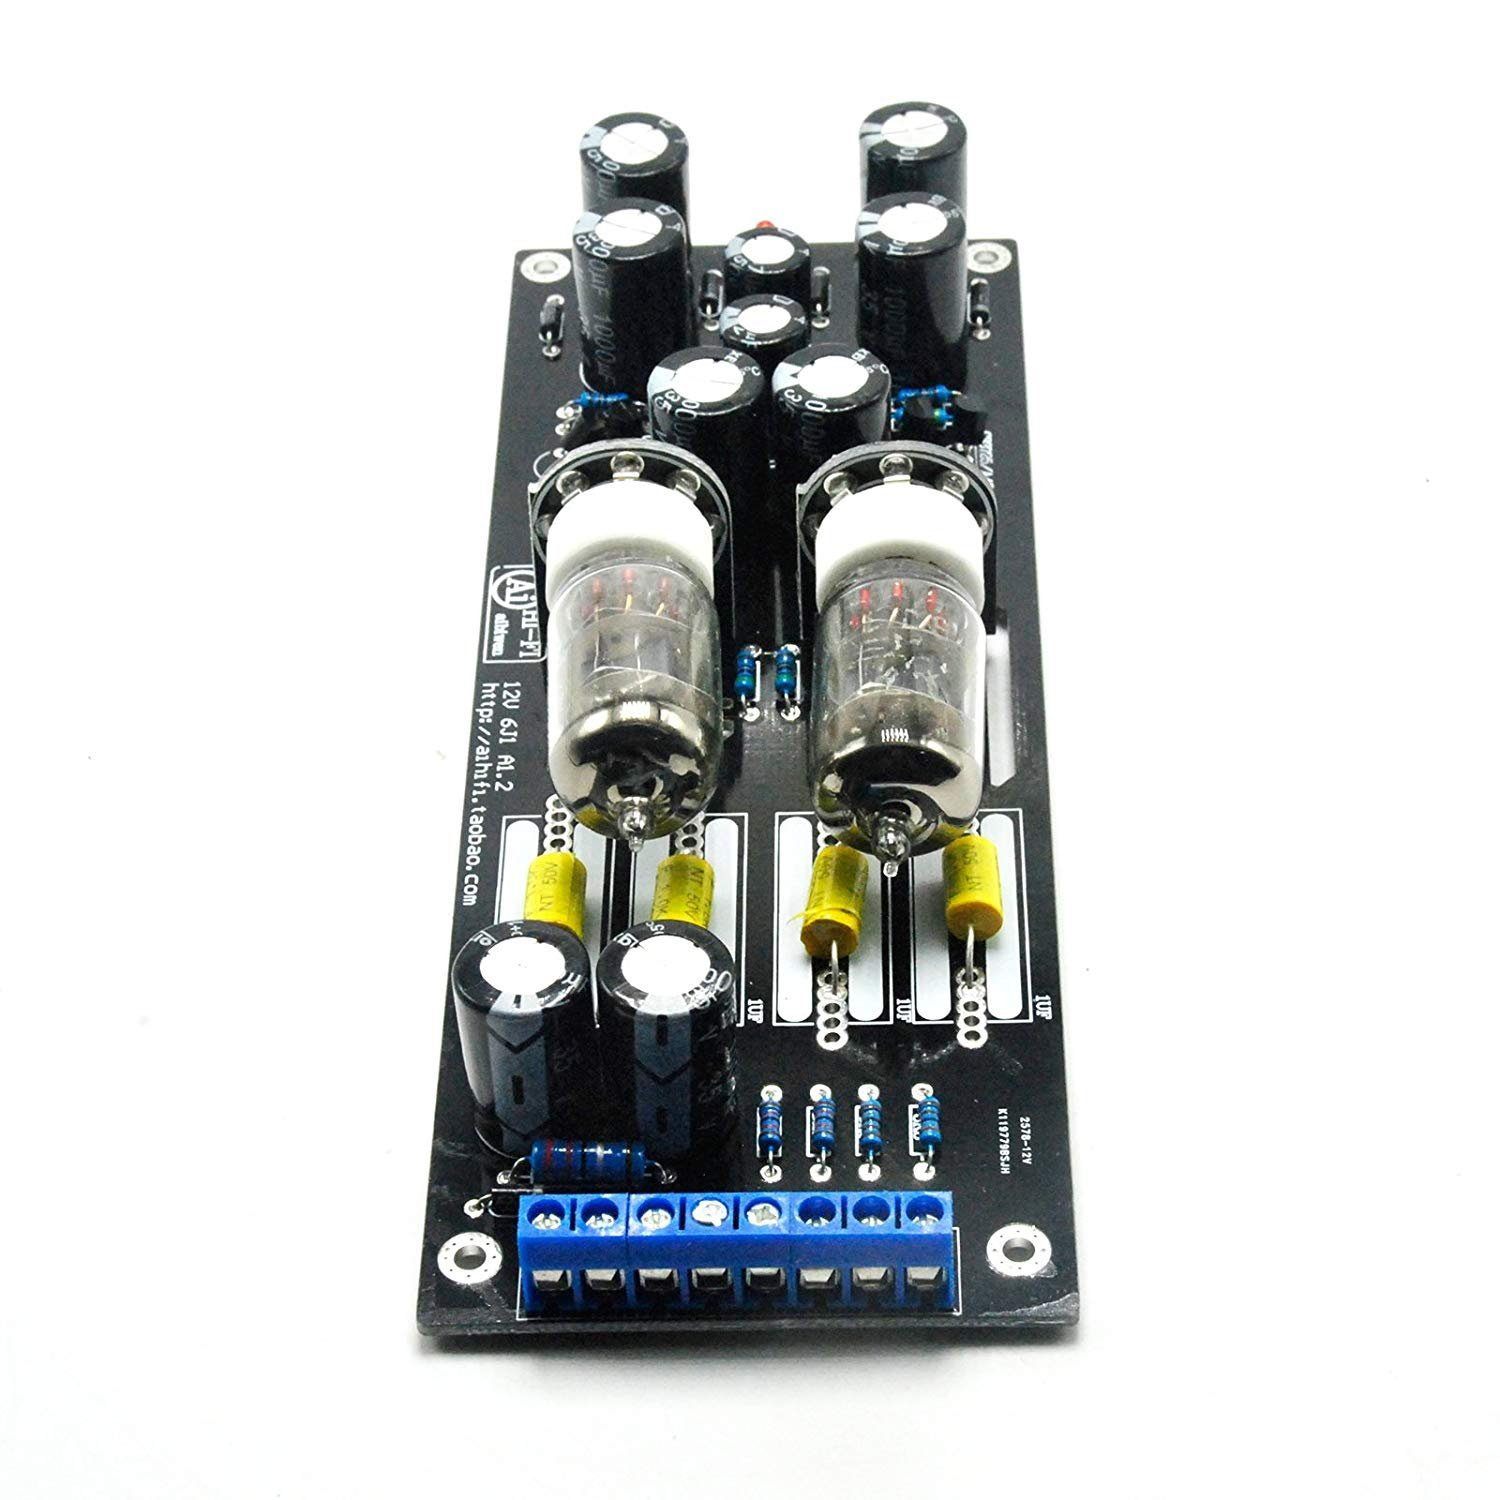 6J1 Valve Pre-amp Tube PreAmplifier Kit Assembled Board Audio Musical Fidelity by Jolooyo